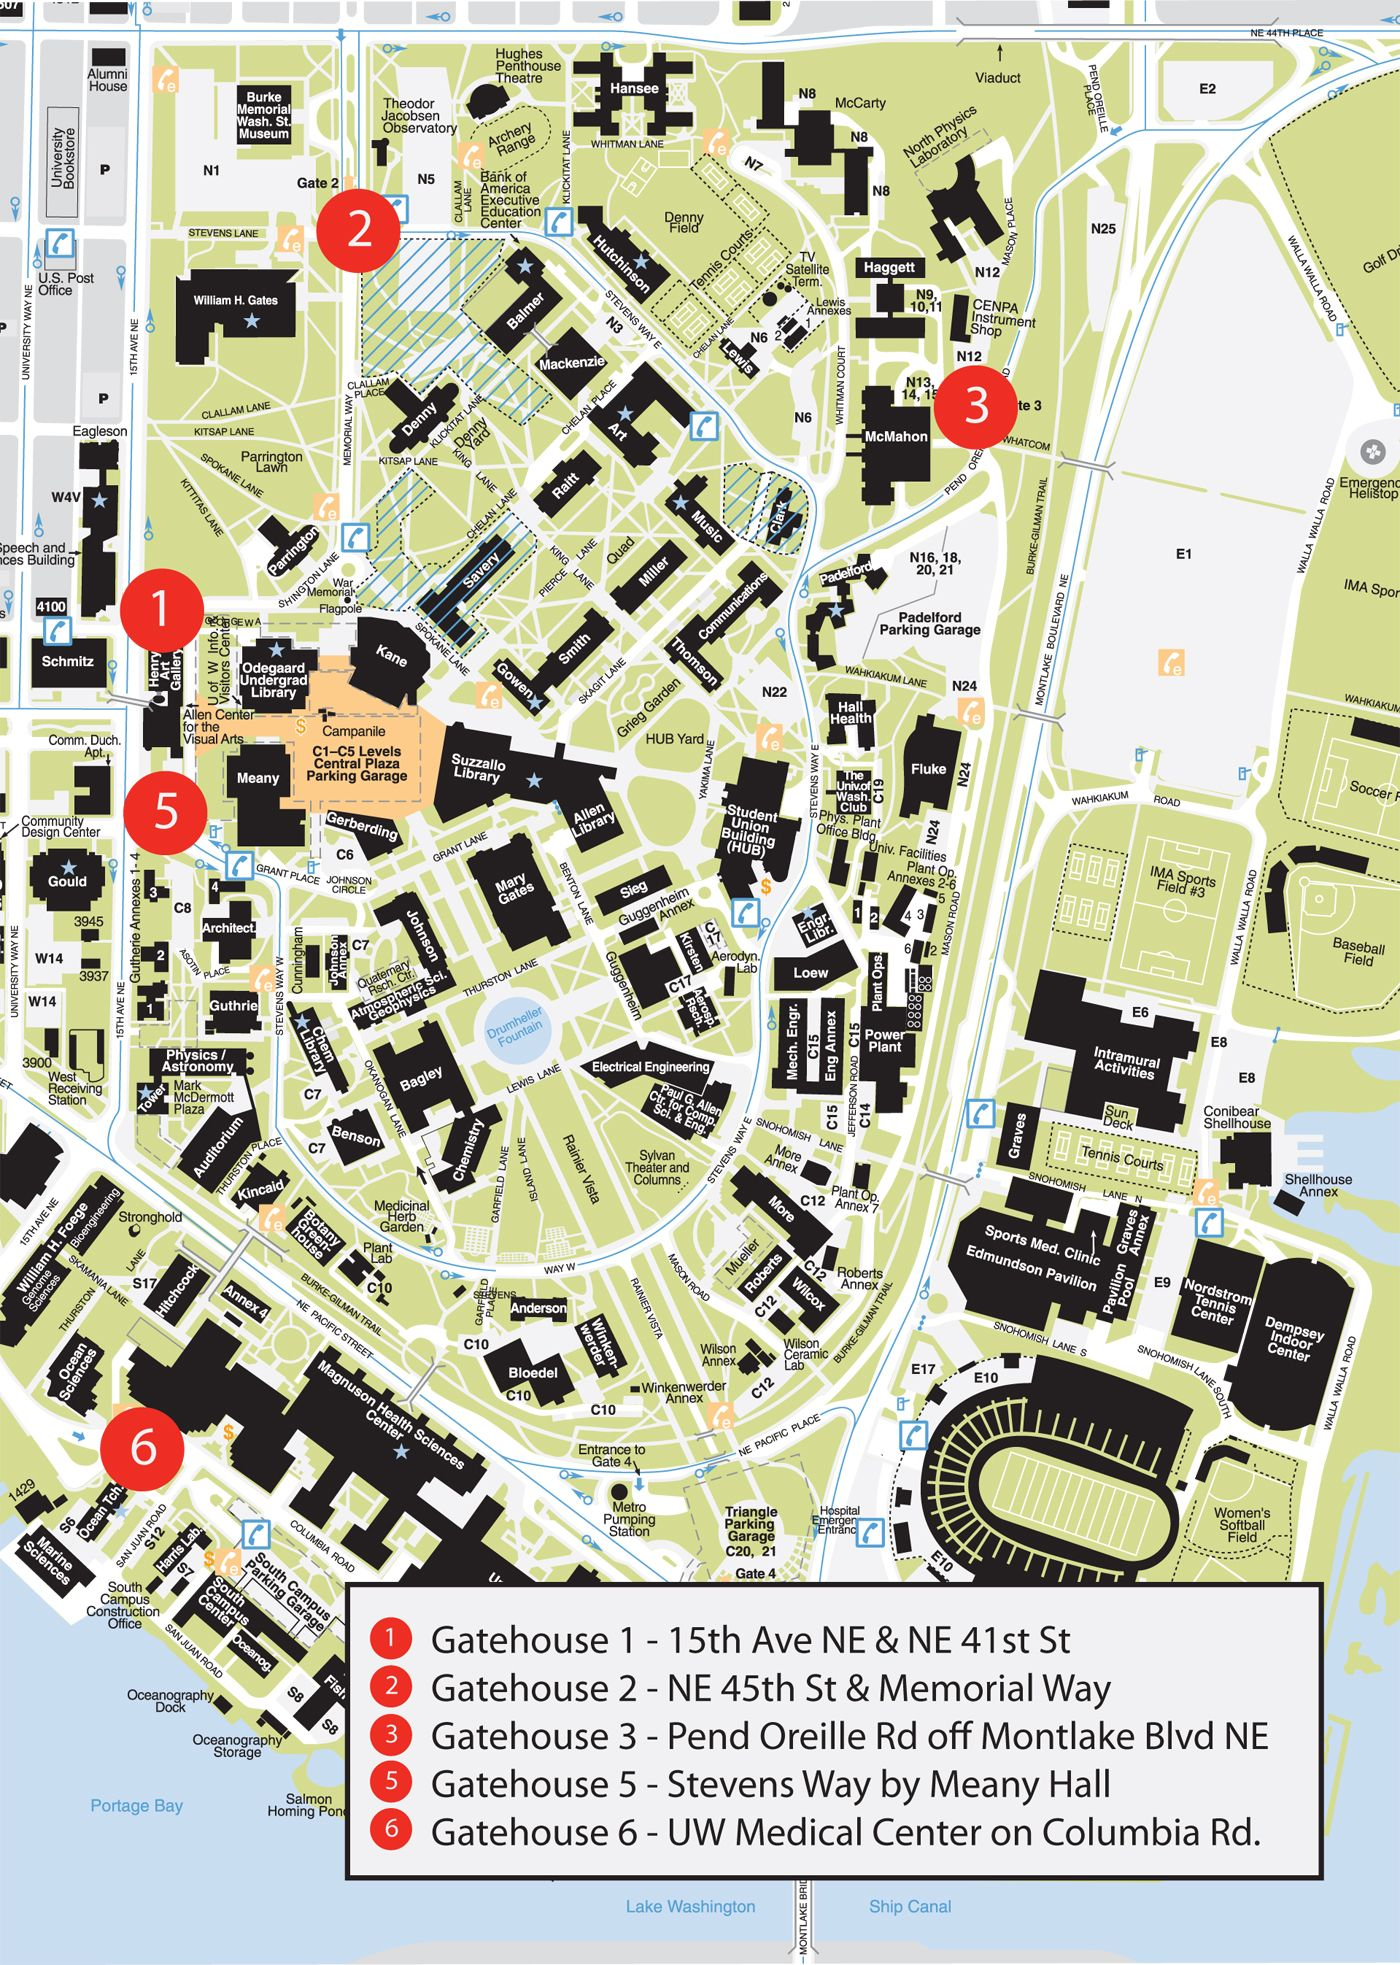 Uw Seattle Campus Map : seattle, campus, Campus,, Underground, Garage, Square